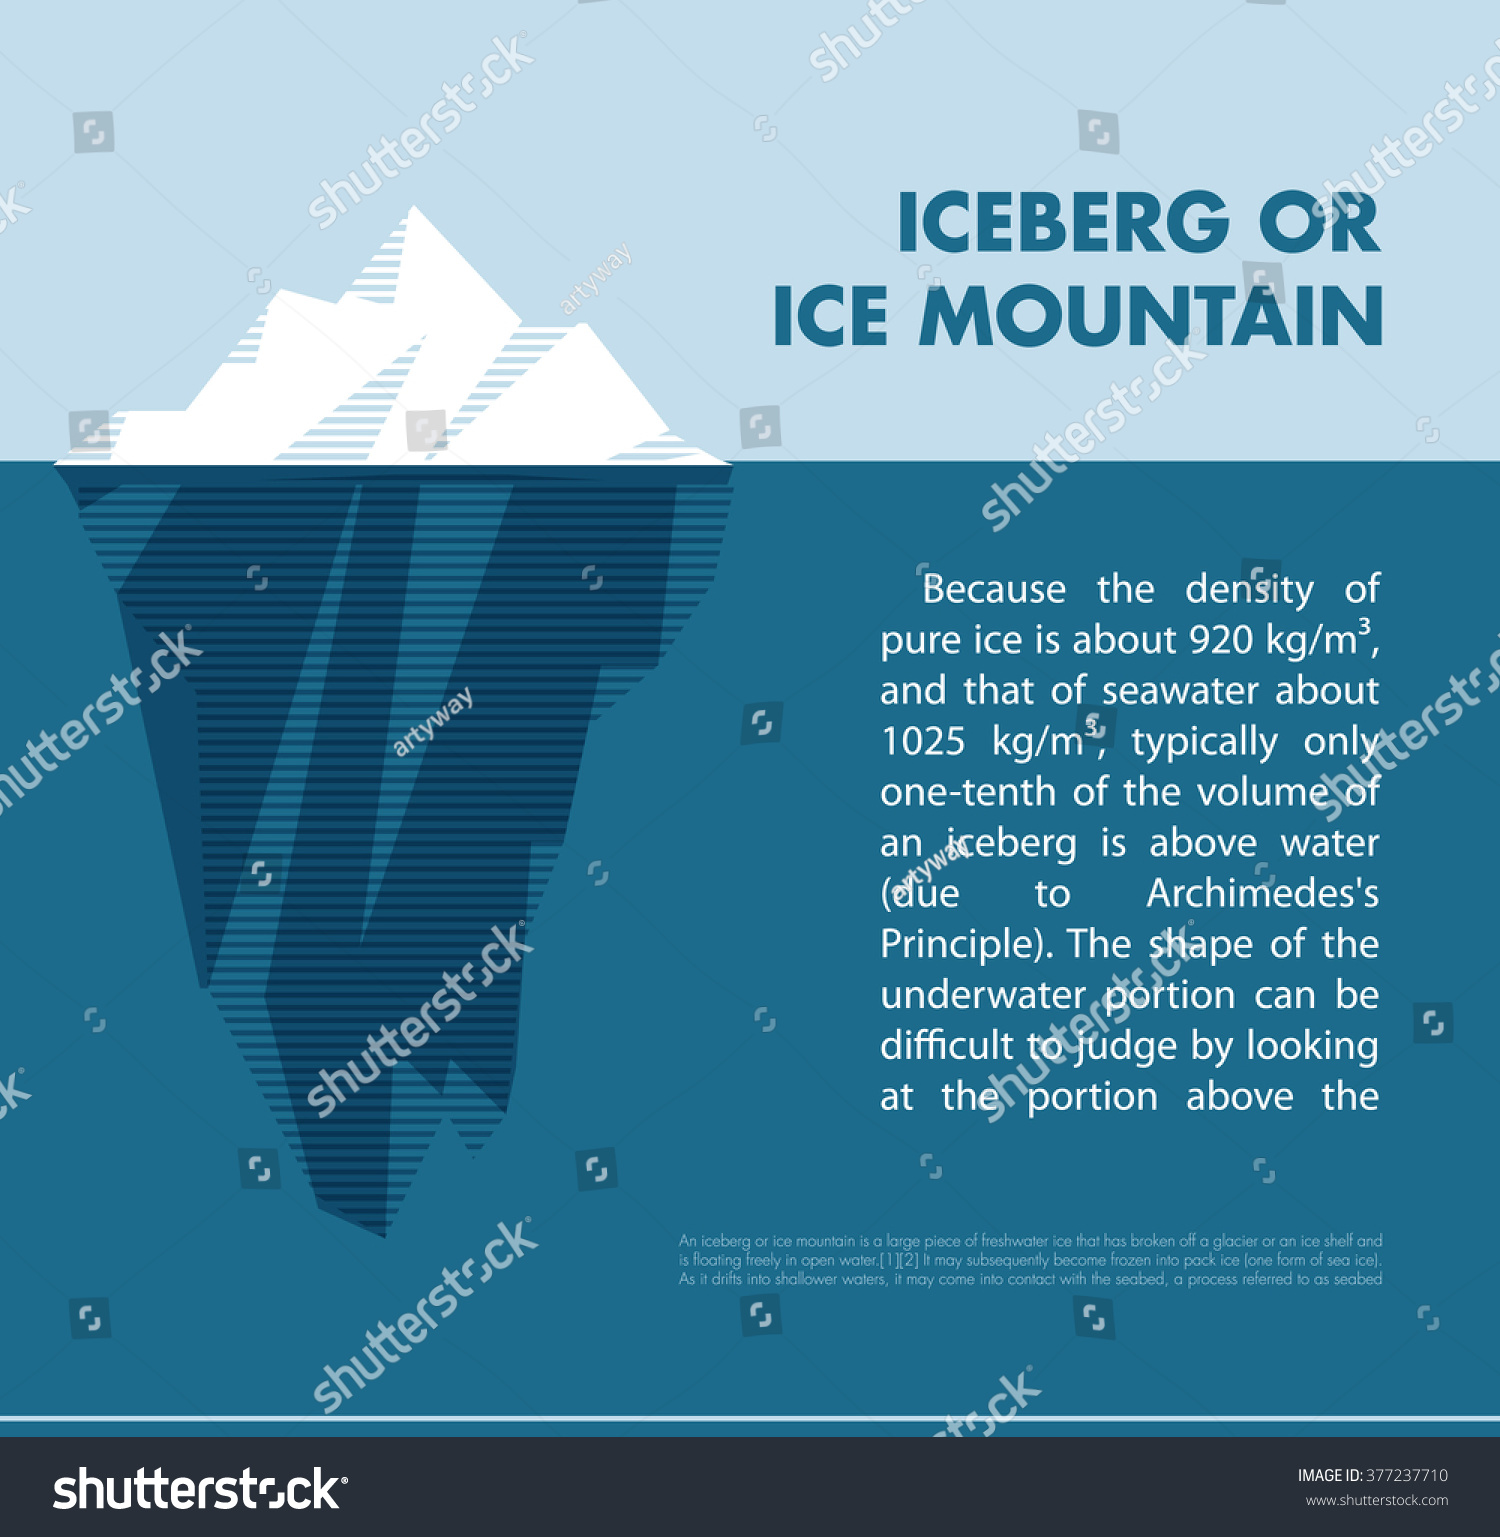 vector illustration white iceberg dark blue stock vector  white iceberg in dark blue ocean isolated water ice mountain tip